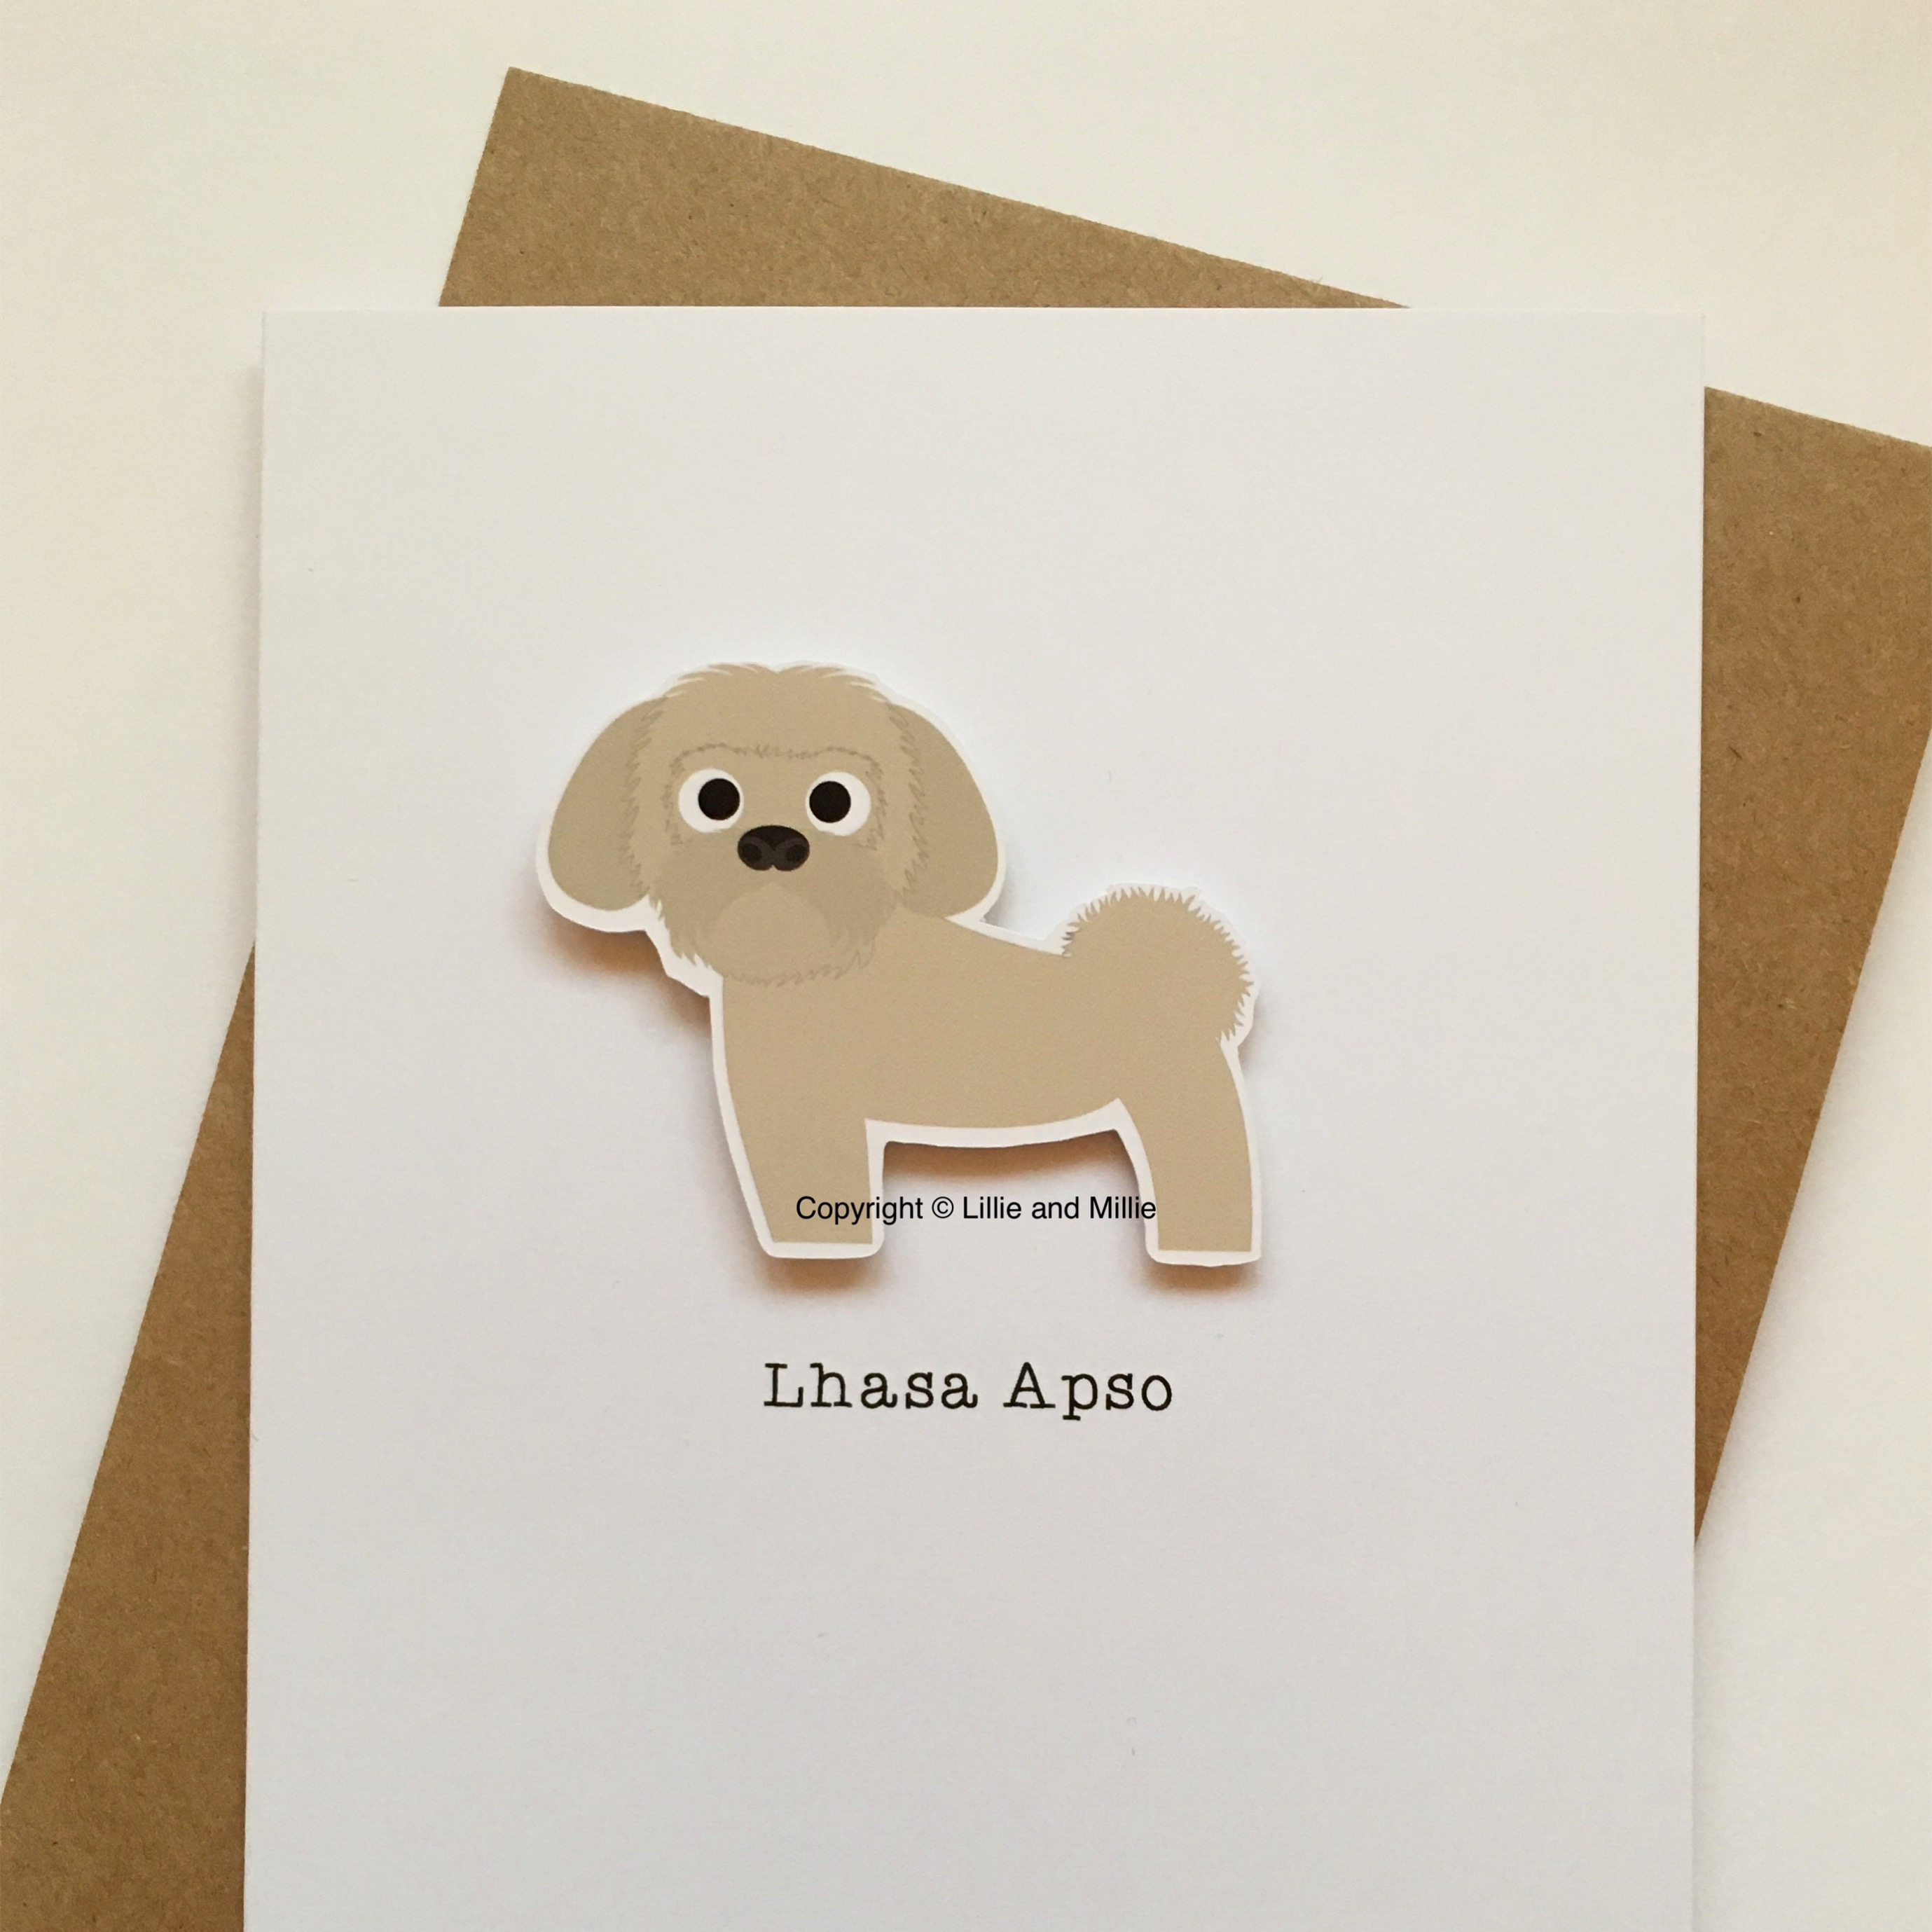 Cute and Cuddly Lhasa Apso Card